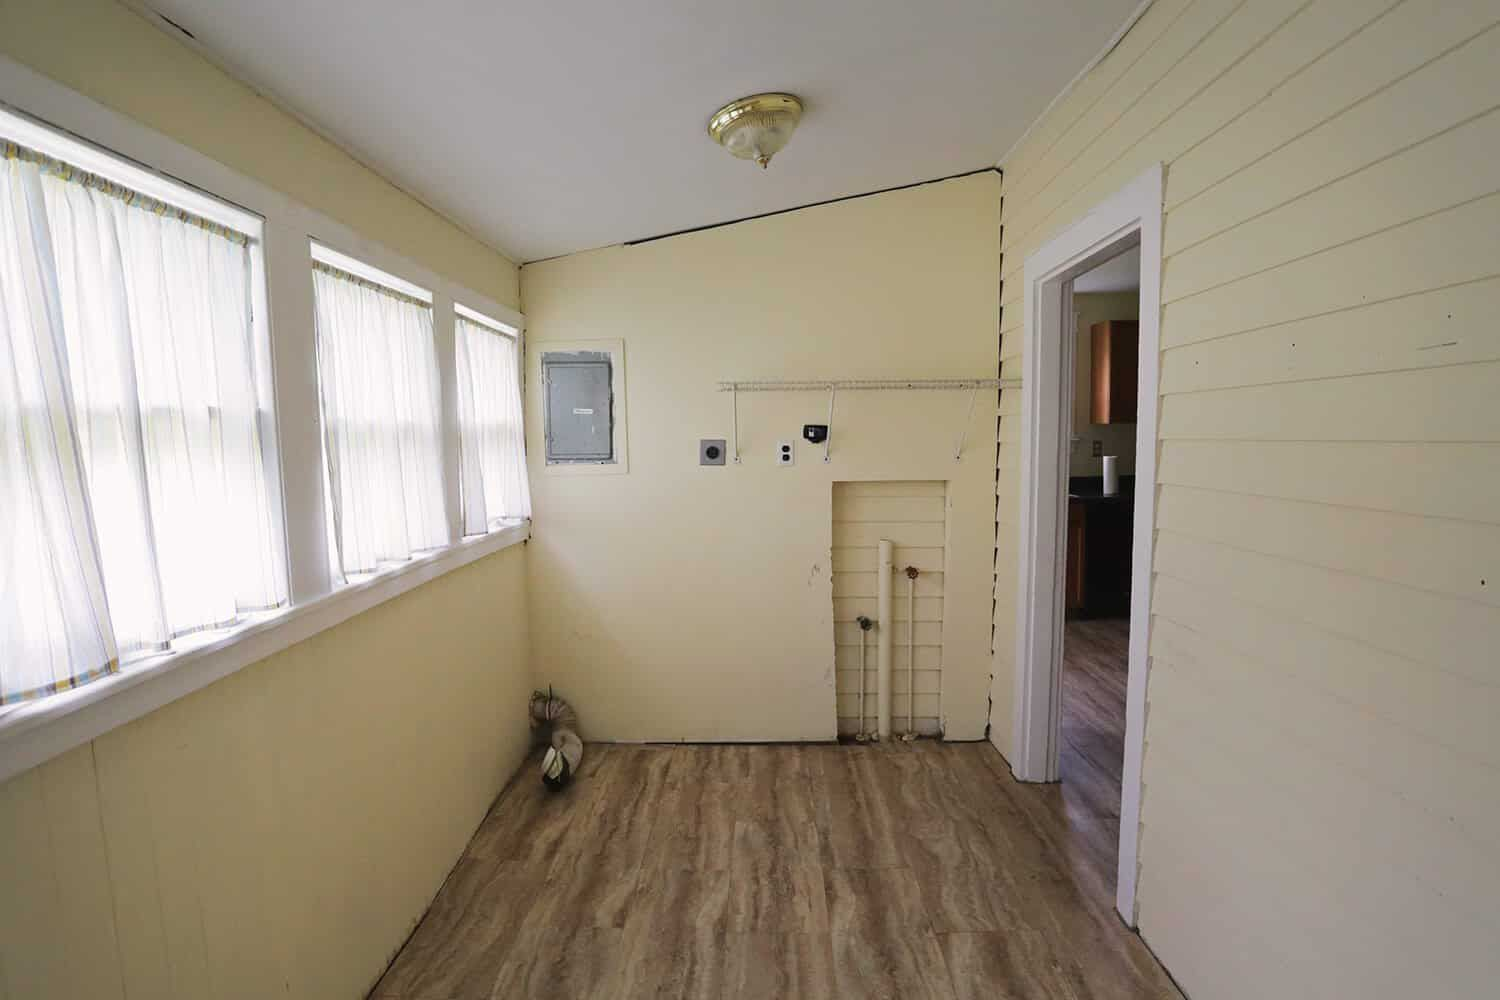 Before laundry room renovation.